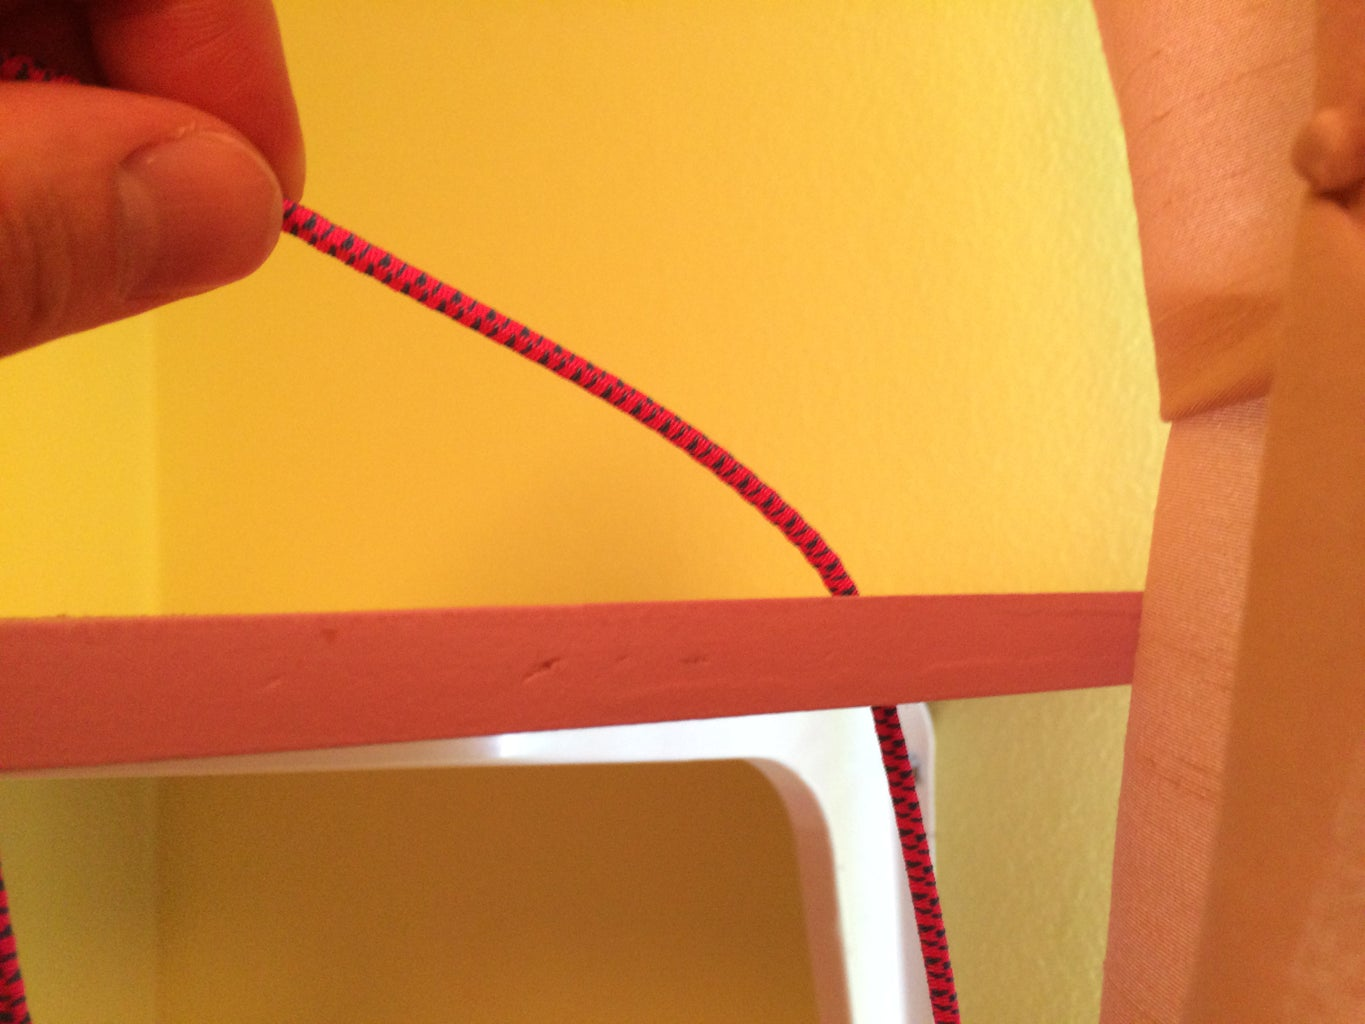 Install Bungee Cords